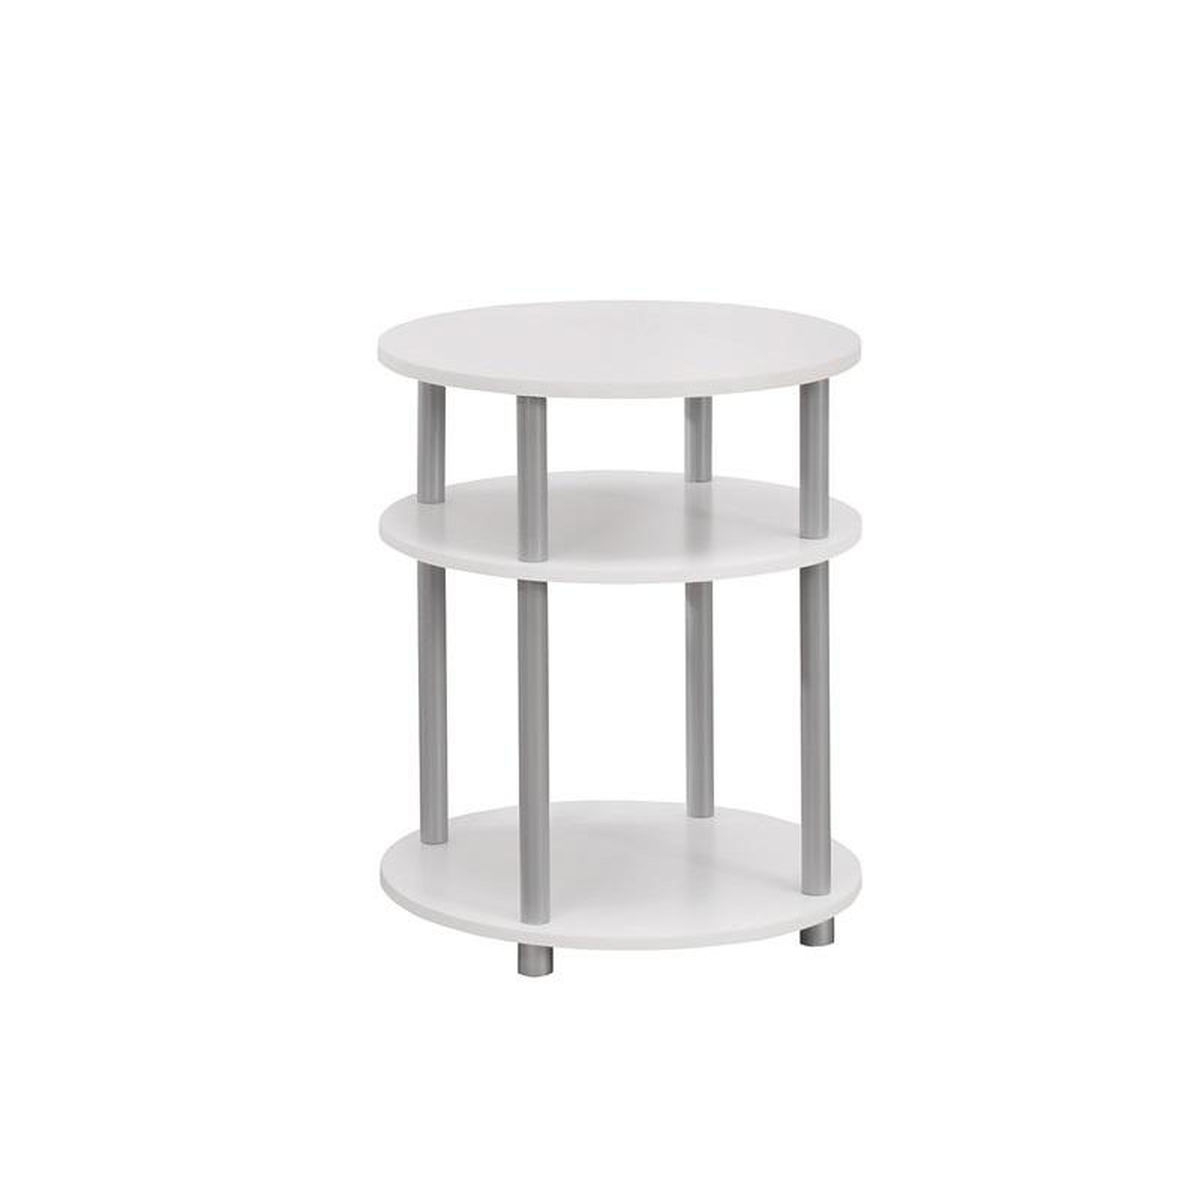 round white accent table bizchair monarch specialties msp main silver our open concept diameter with patio lounge furniture chairs under legs coffee decor ideas counter height